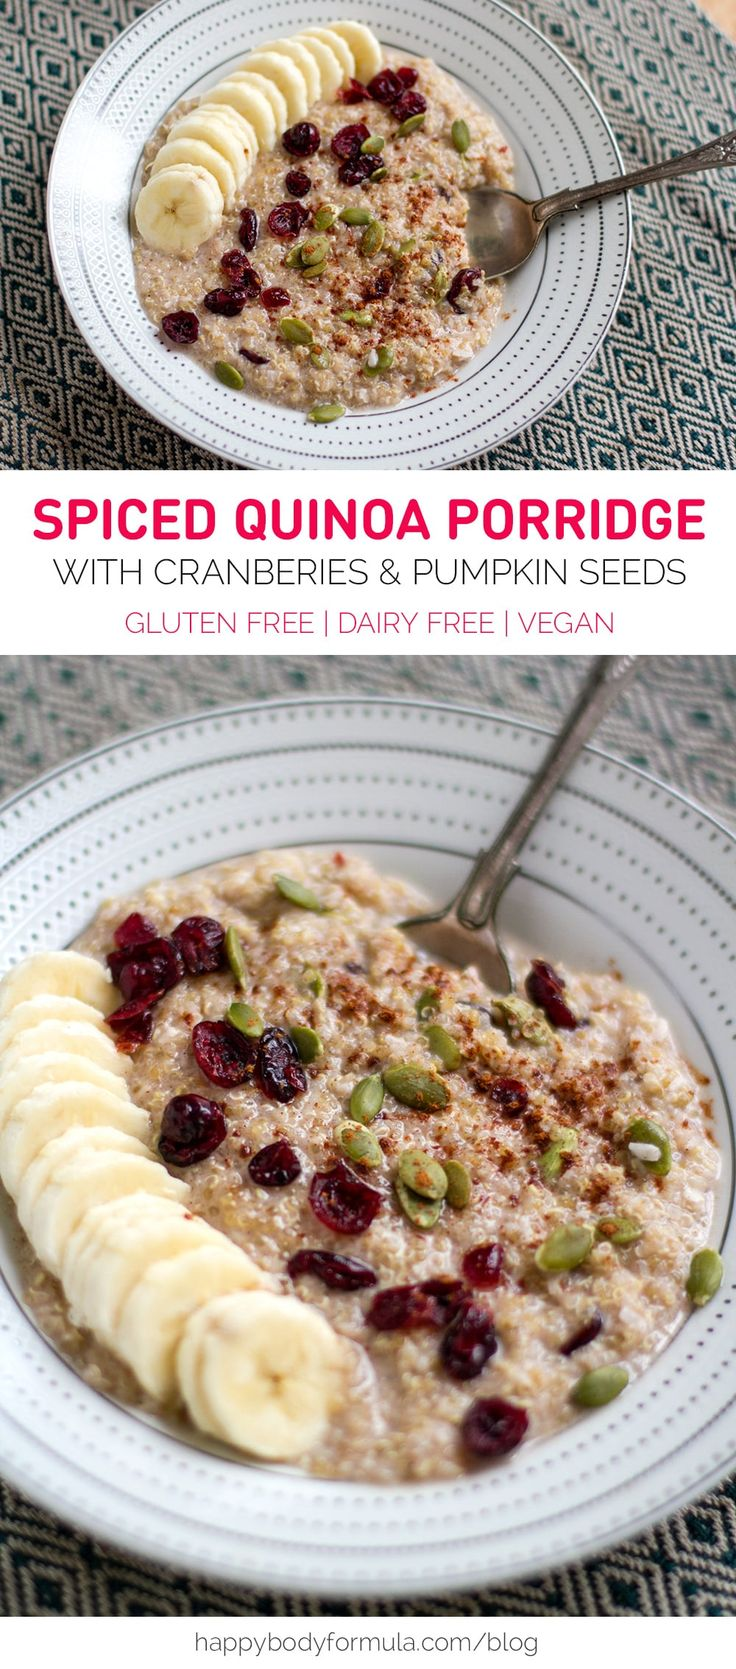 5-Minute Spiced Quinoa Coconut Porridge - Gluten Free, Dairy Free, Vegan. Via Happy Body Formula